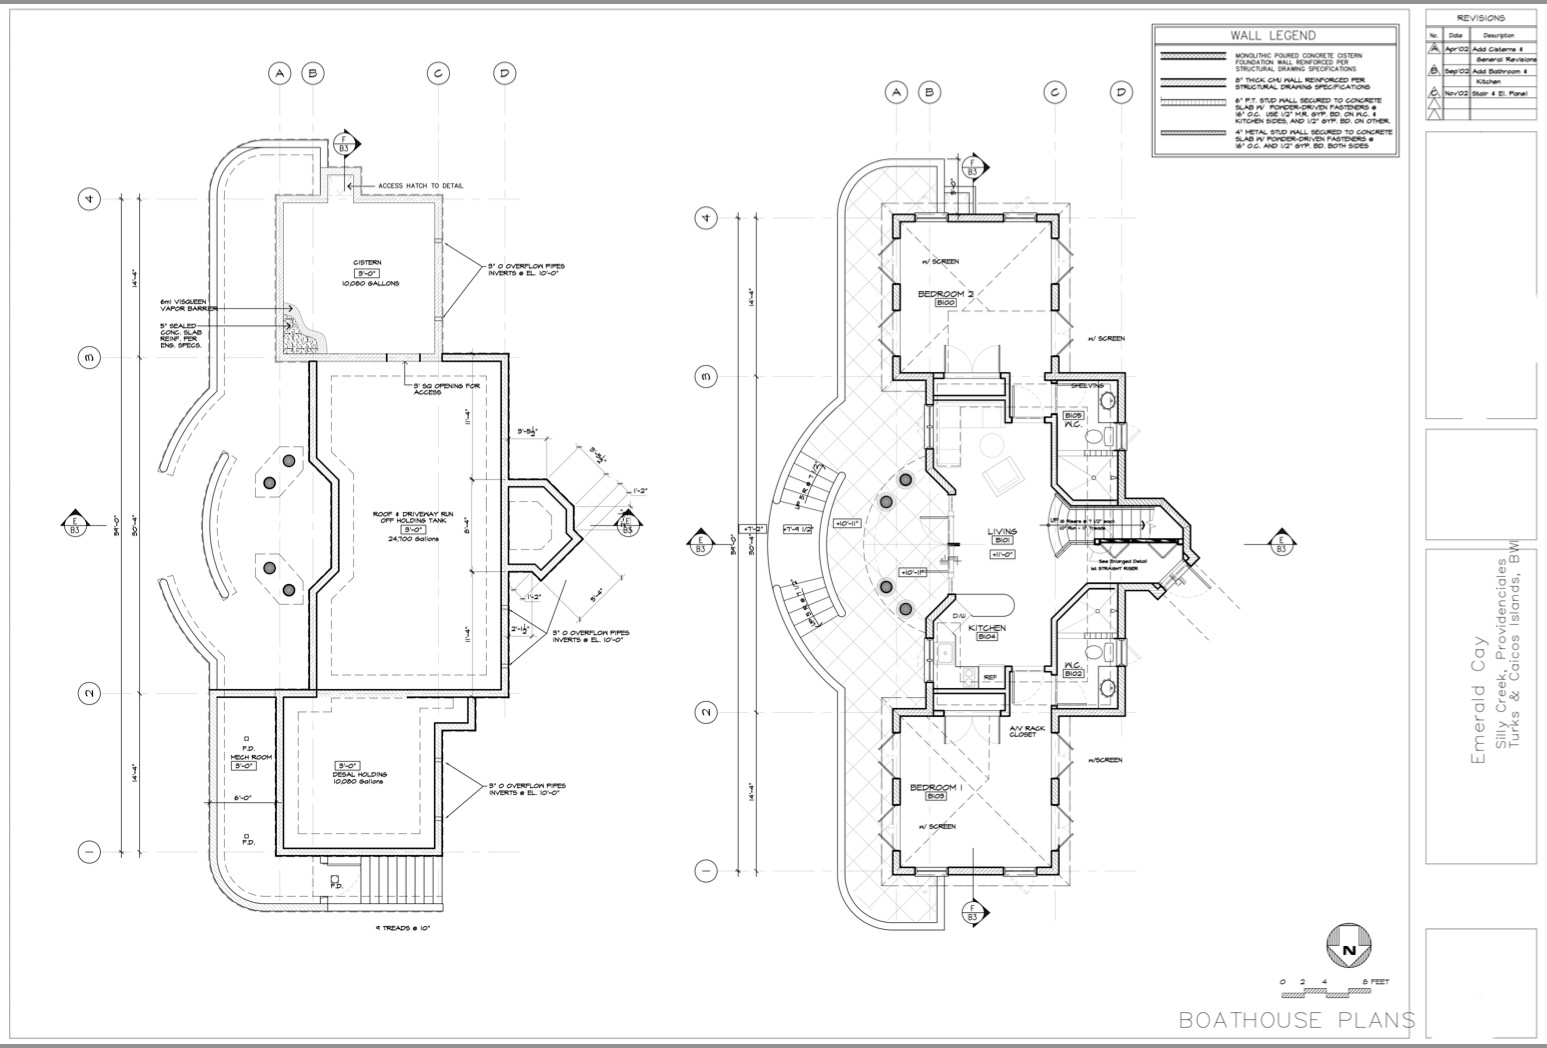 Boathouse Floor Plans - Emerald Cay Estate - Providenciales, Turks and Caicos Islands